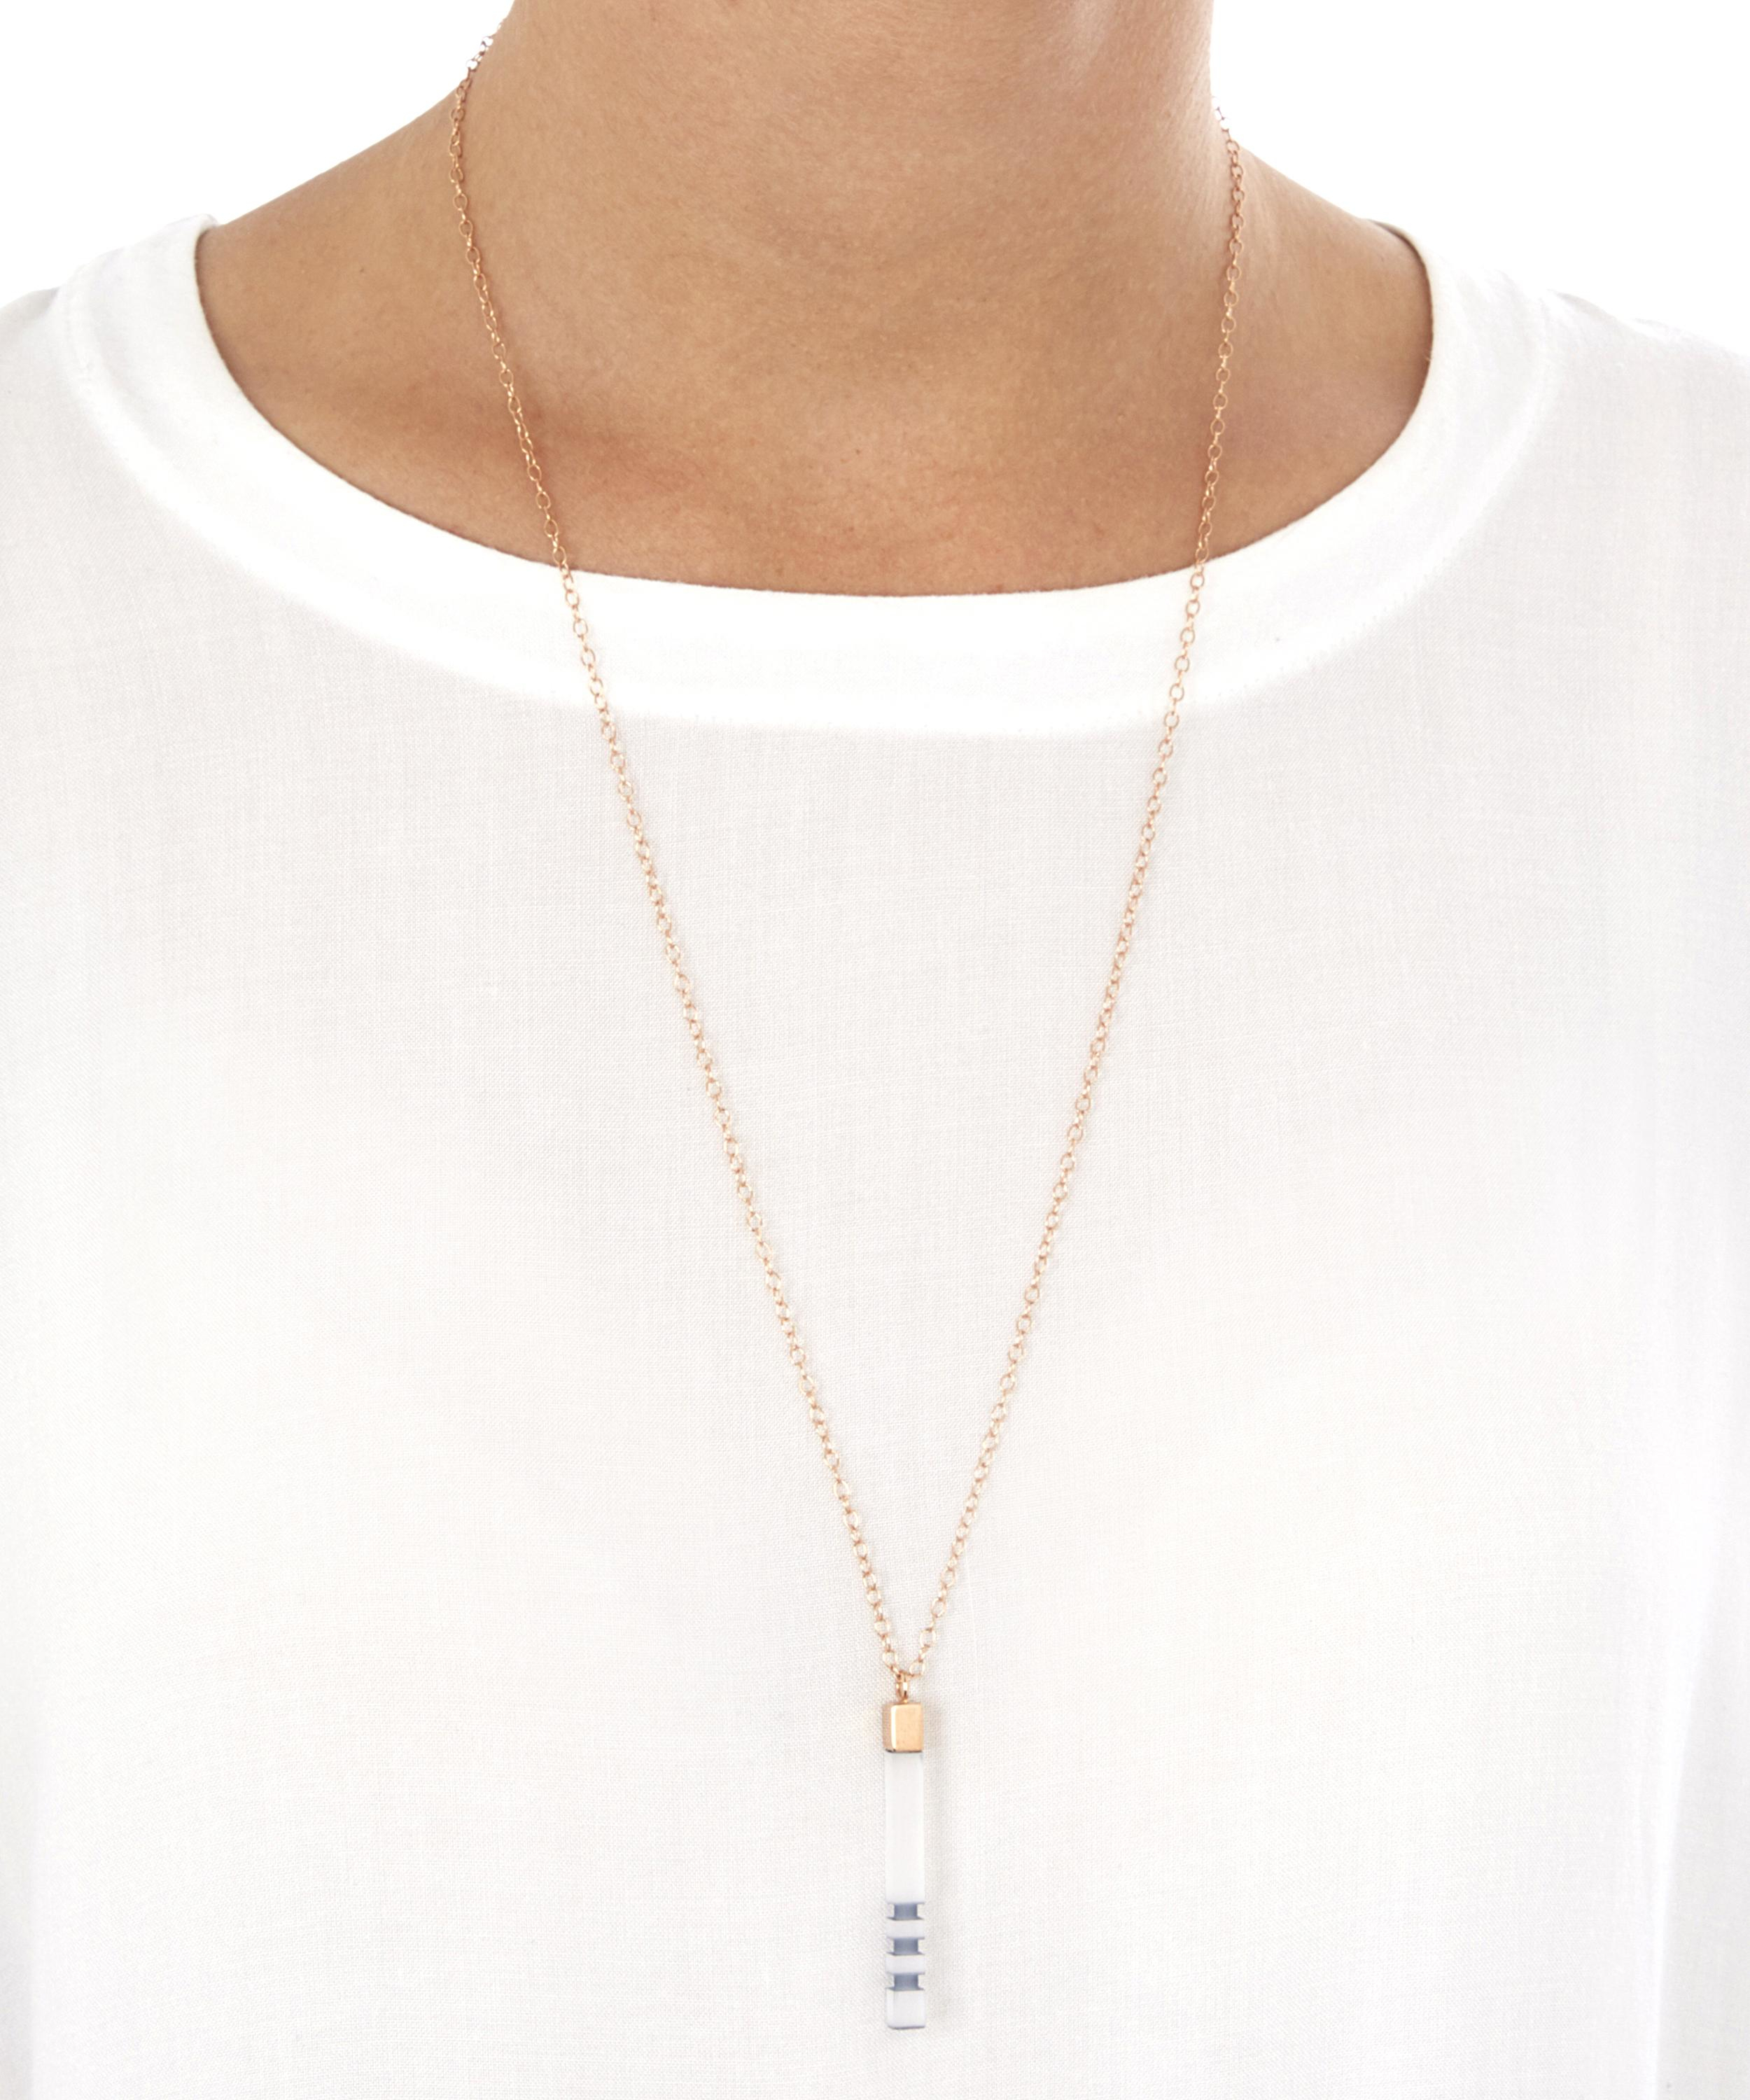 Lily Kamper Mini Frosted Resin Round Column Pendant Necklace in Mid Grey (Grey)